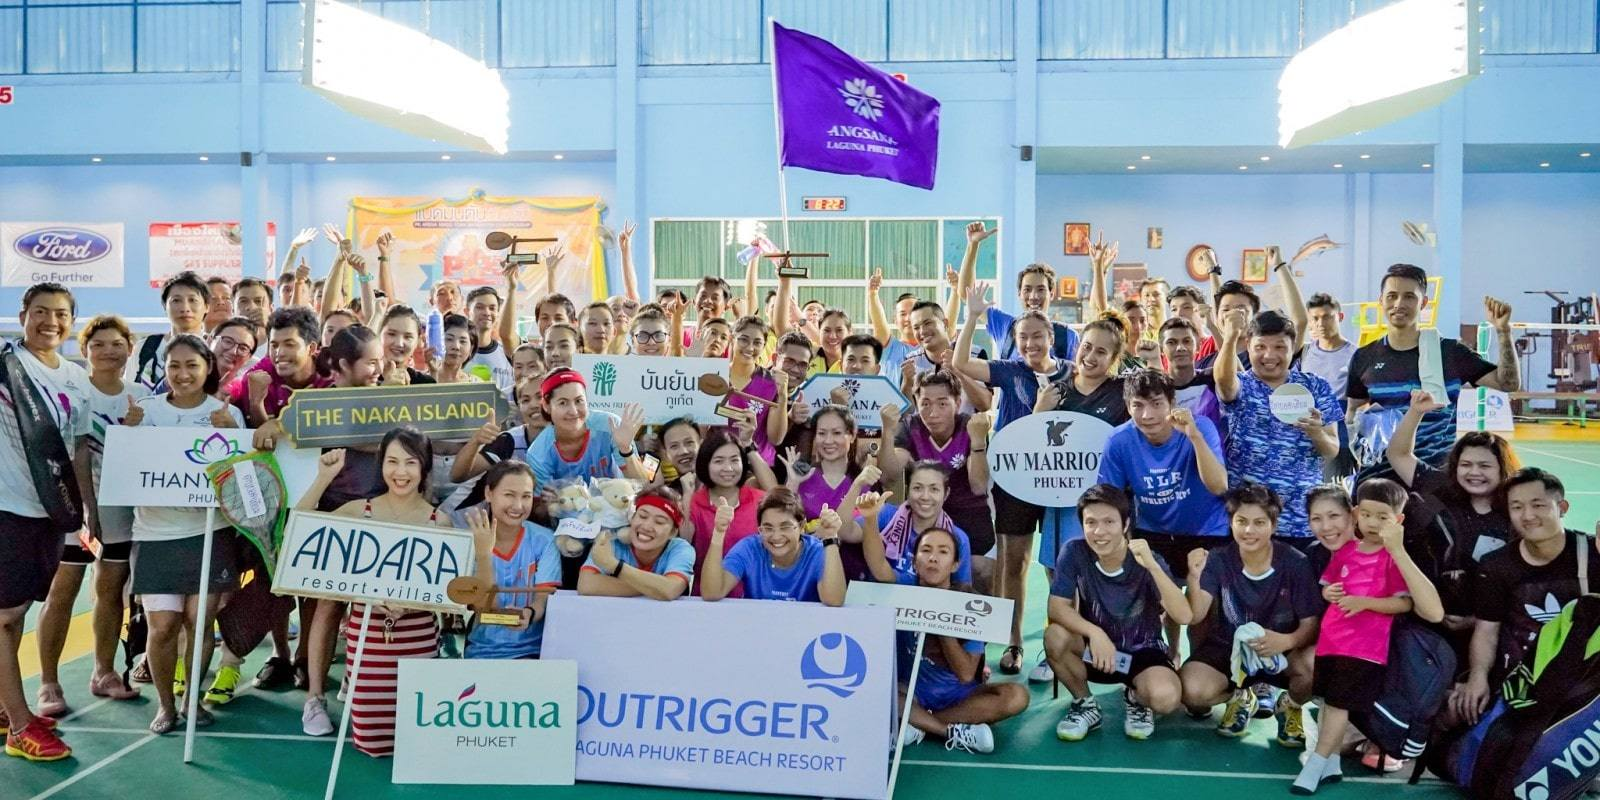 Hotel badminton teams raise funds for Phuket school | The Thaiger